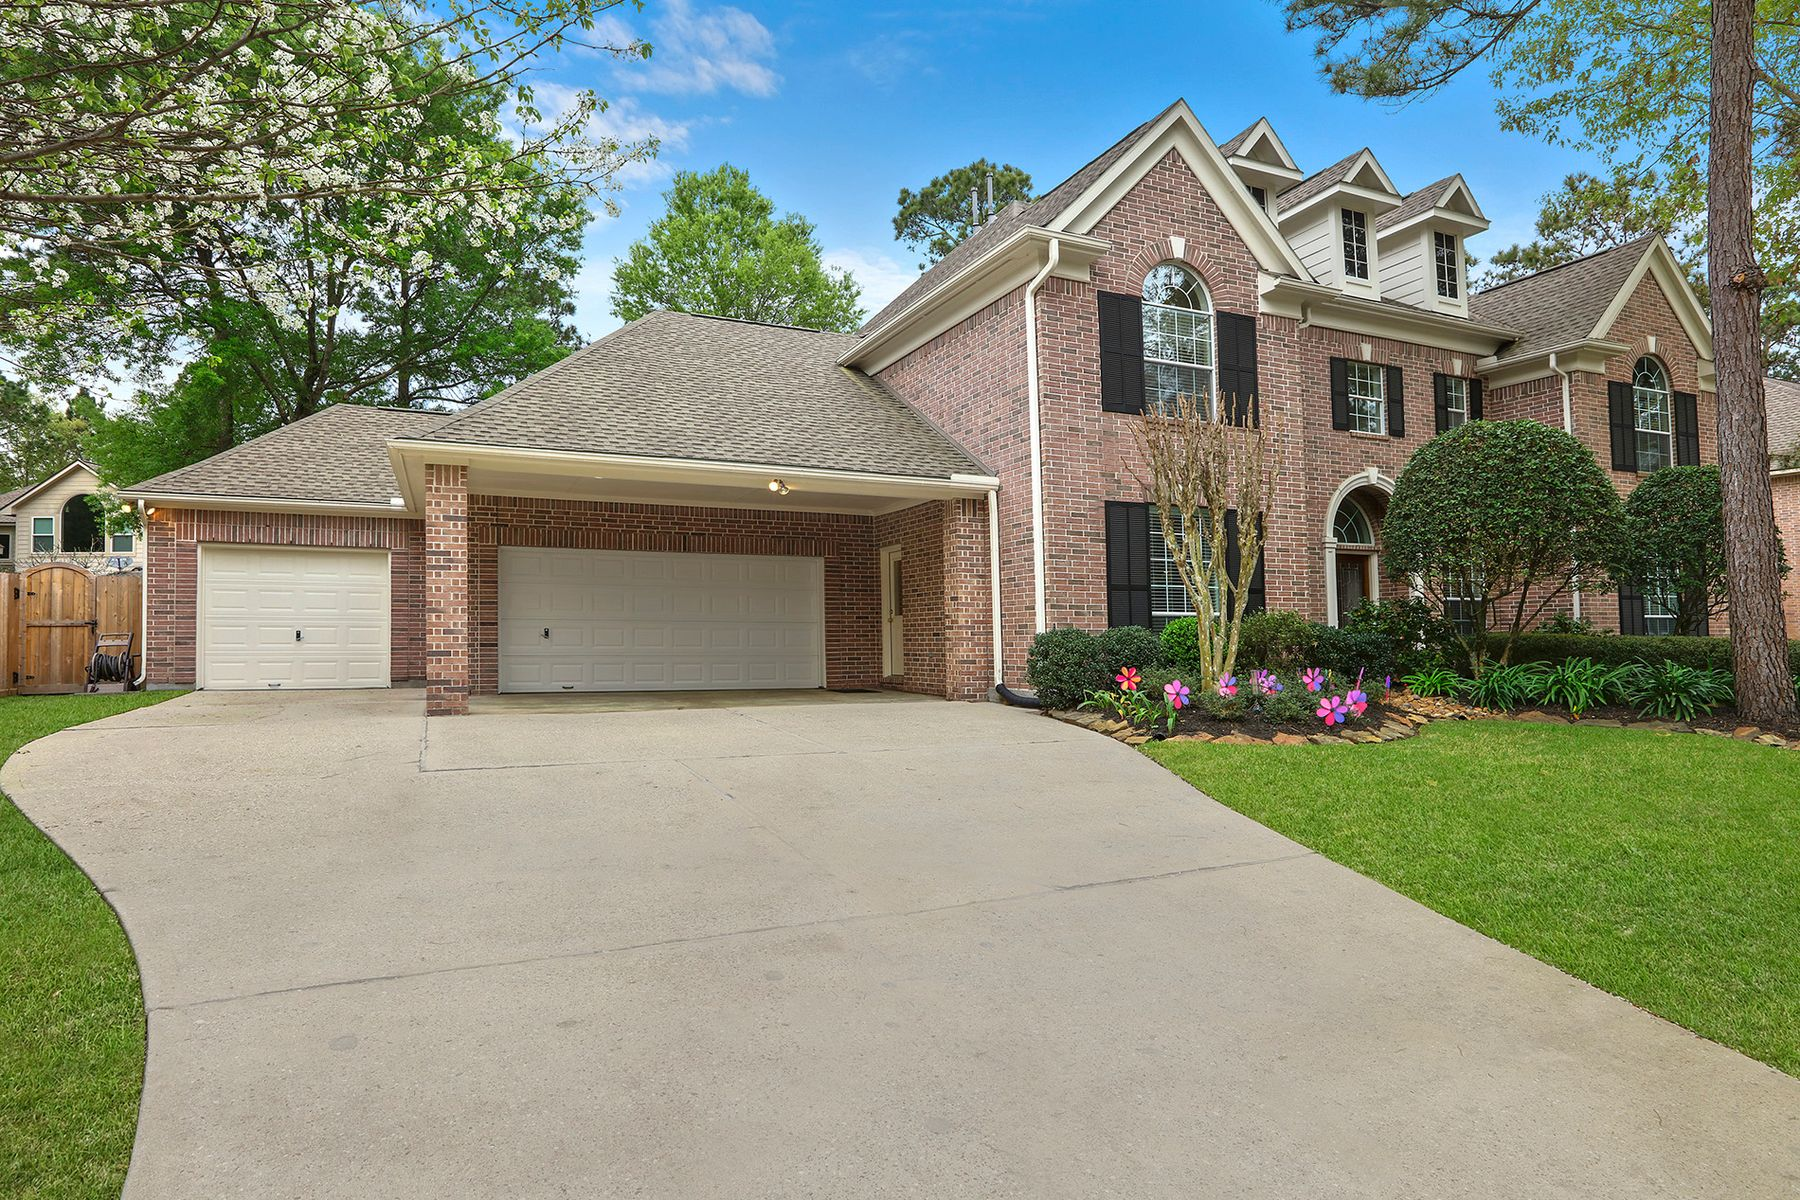 Single Family Homes for Active at 2822 Mountain Green Trail Kingwood, Texas 77345 United States